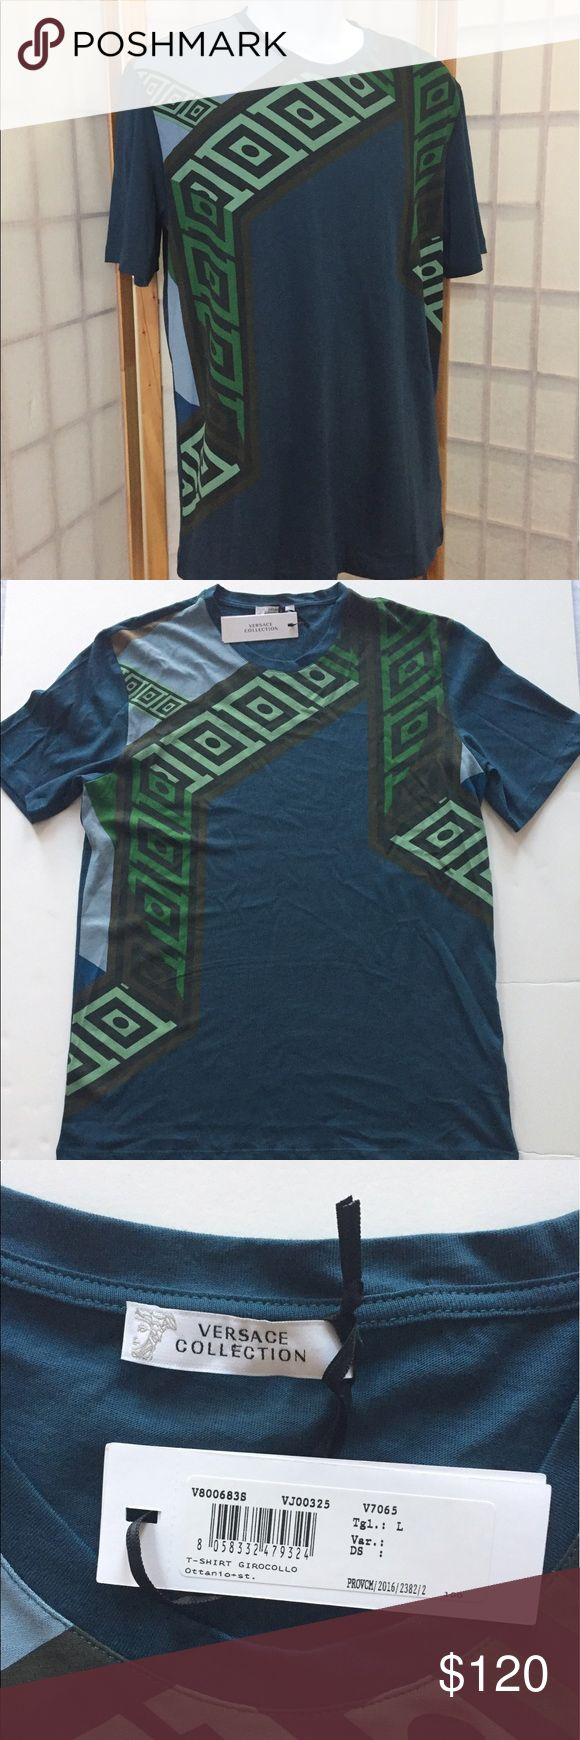 "Versace Men Graphic Tee Sz L, Navy/Green NWT New with tags Versace Men t Shirt , Sz L. True to size. Navy color with green and black geometric pattern. 100% cotton. Length 28"". Versace Shirts Tees - Short Sleeve"